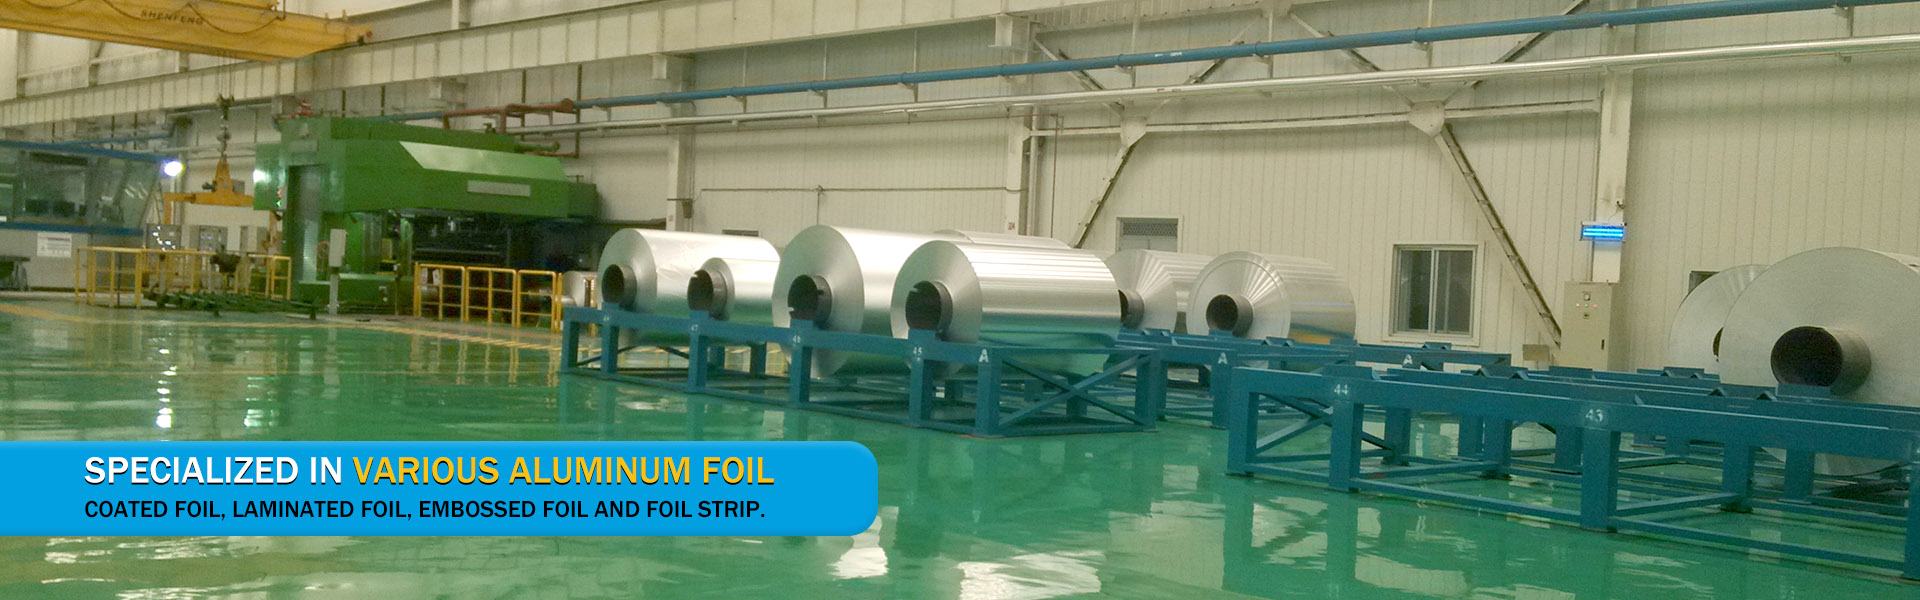 Specialized in various aluminum foil